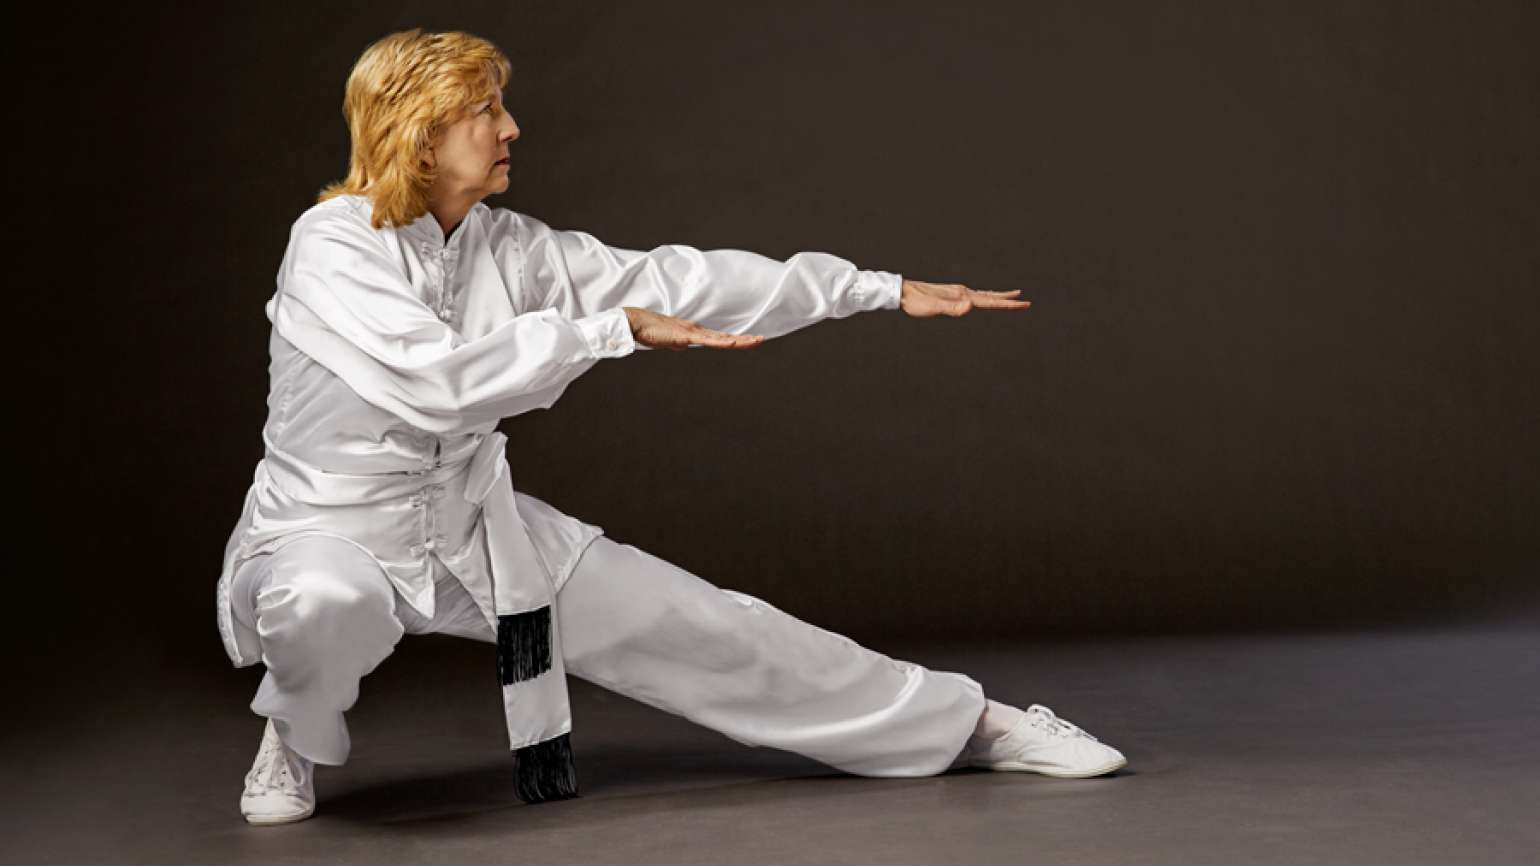 Mikki Davis has found that tai chi integrates very well with her faith.